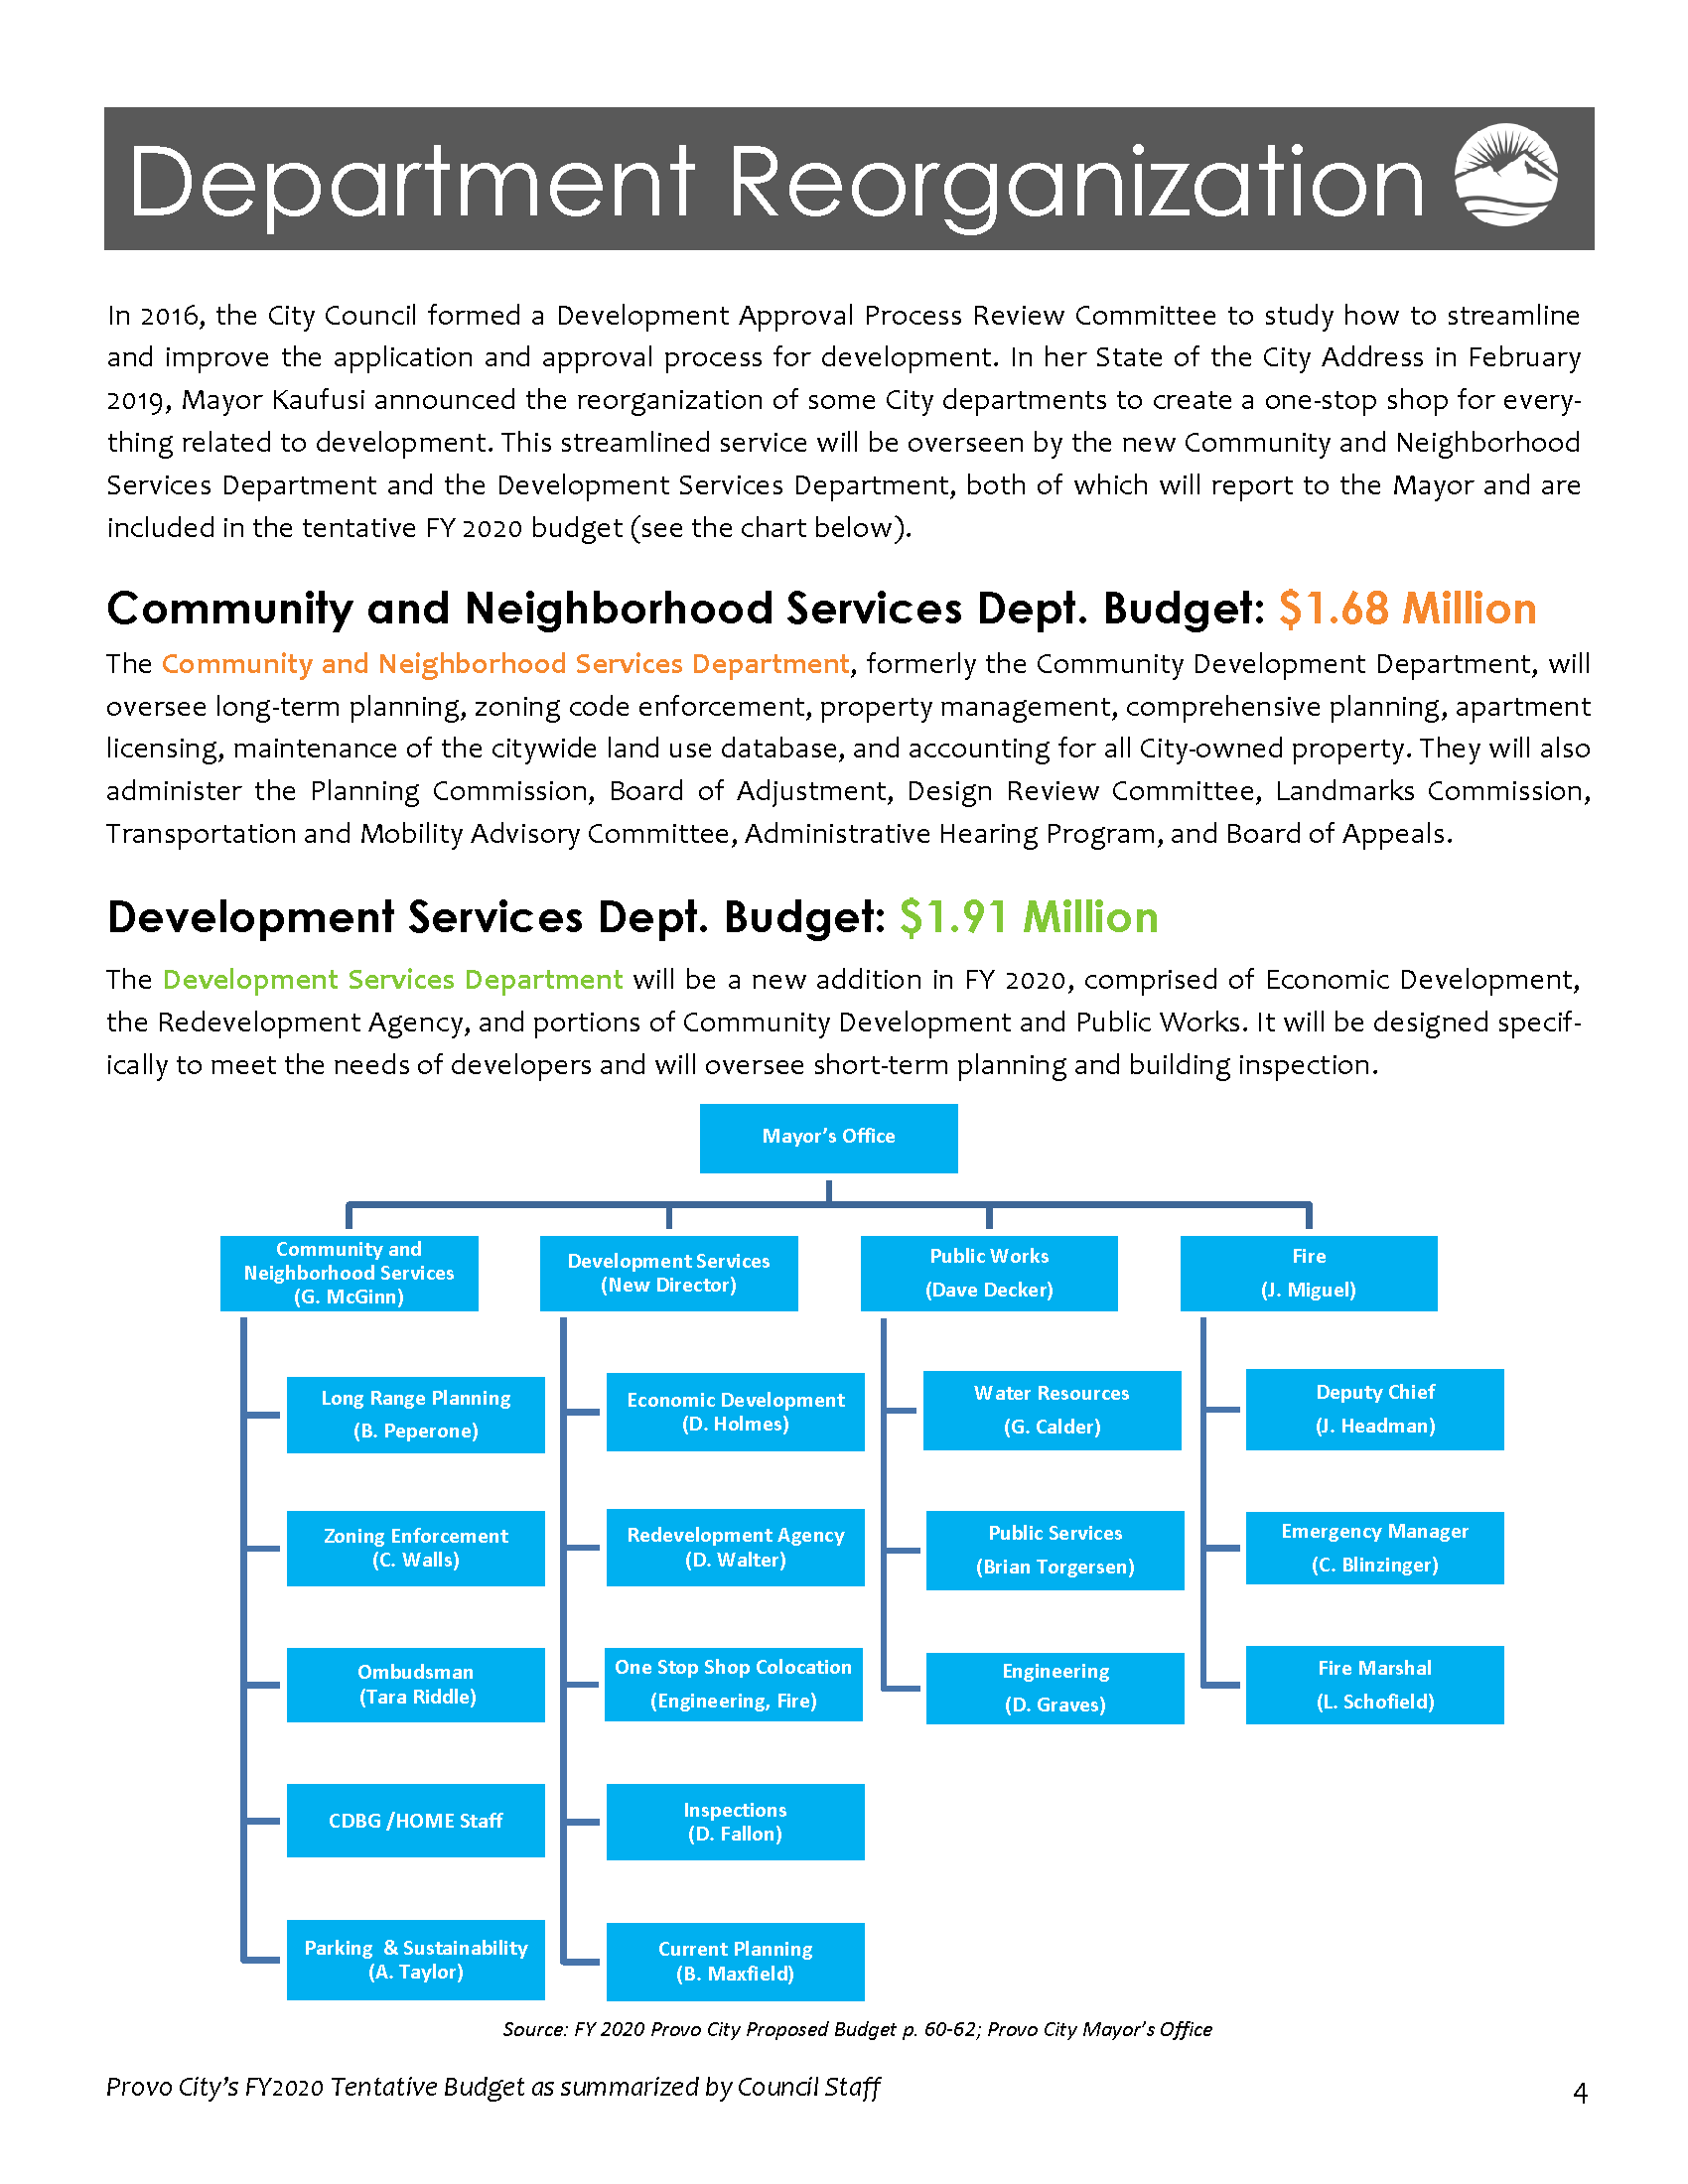 citizens budget page 4